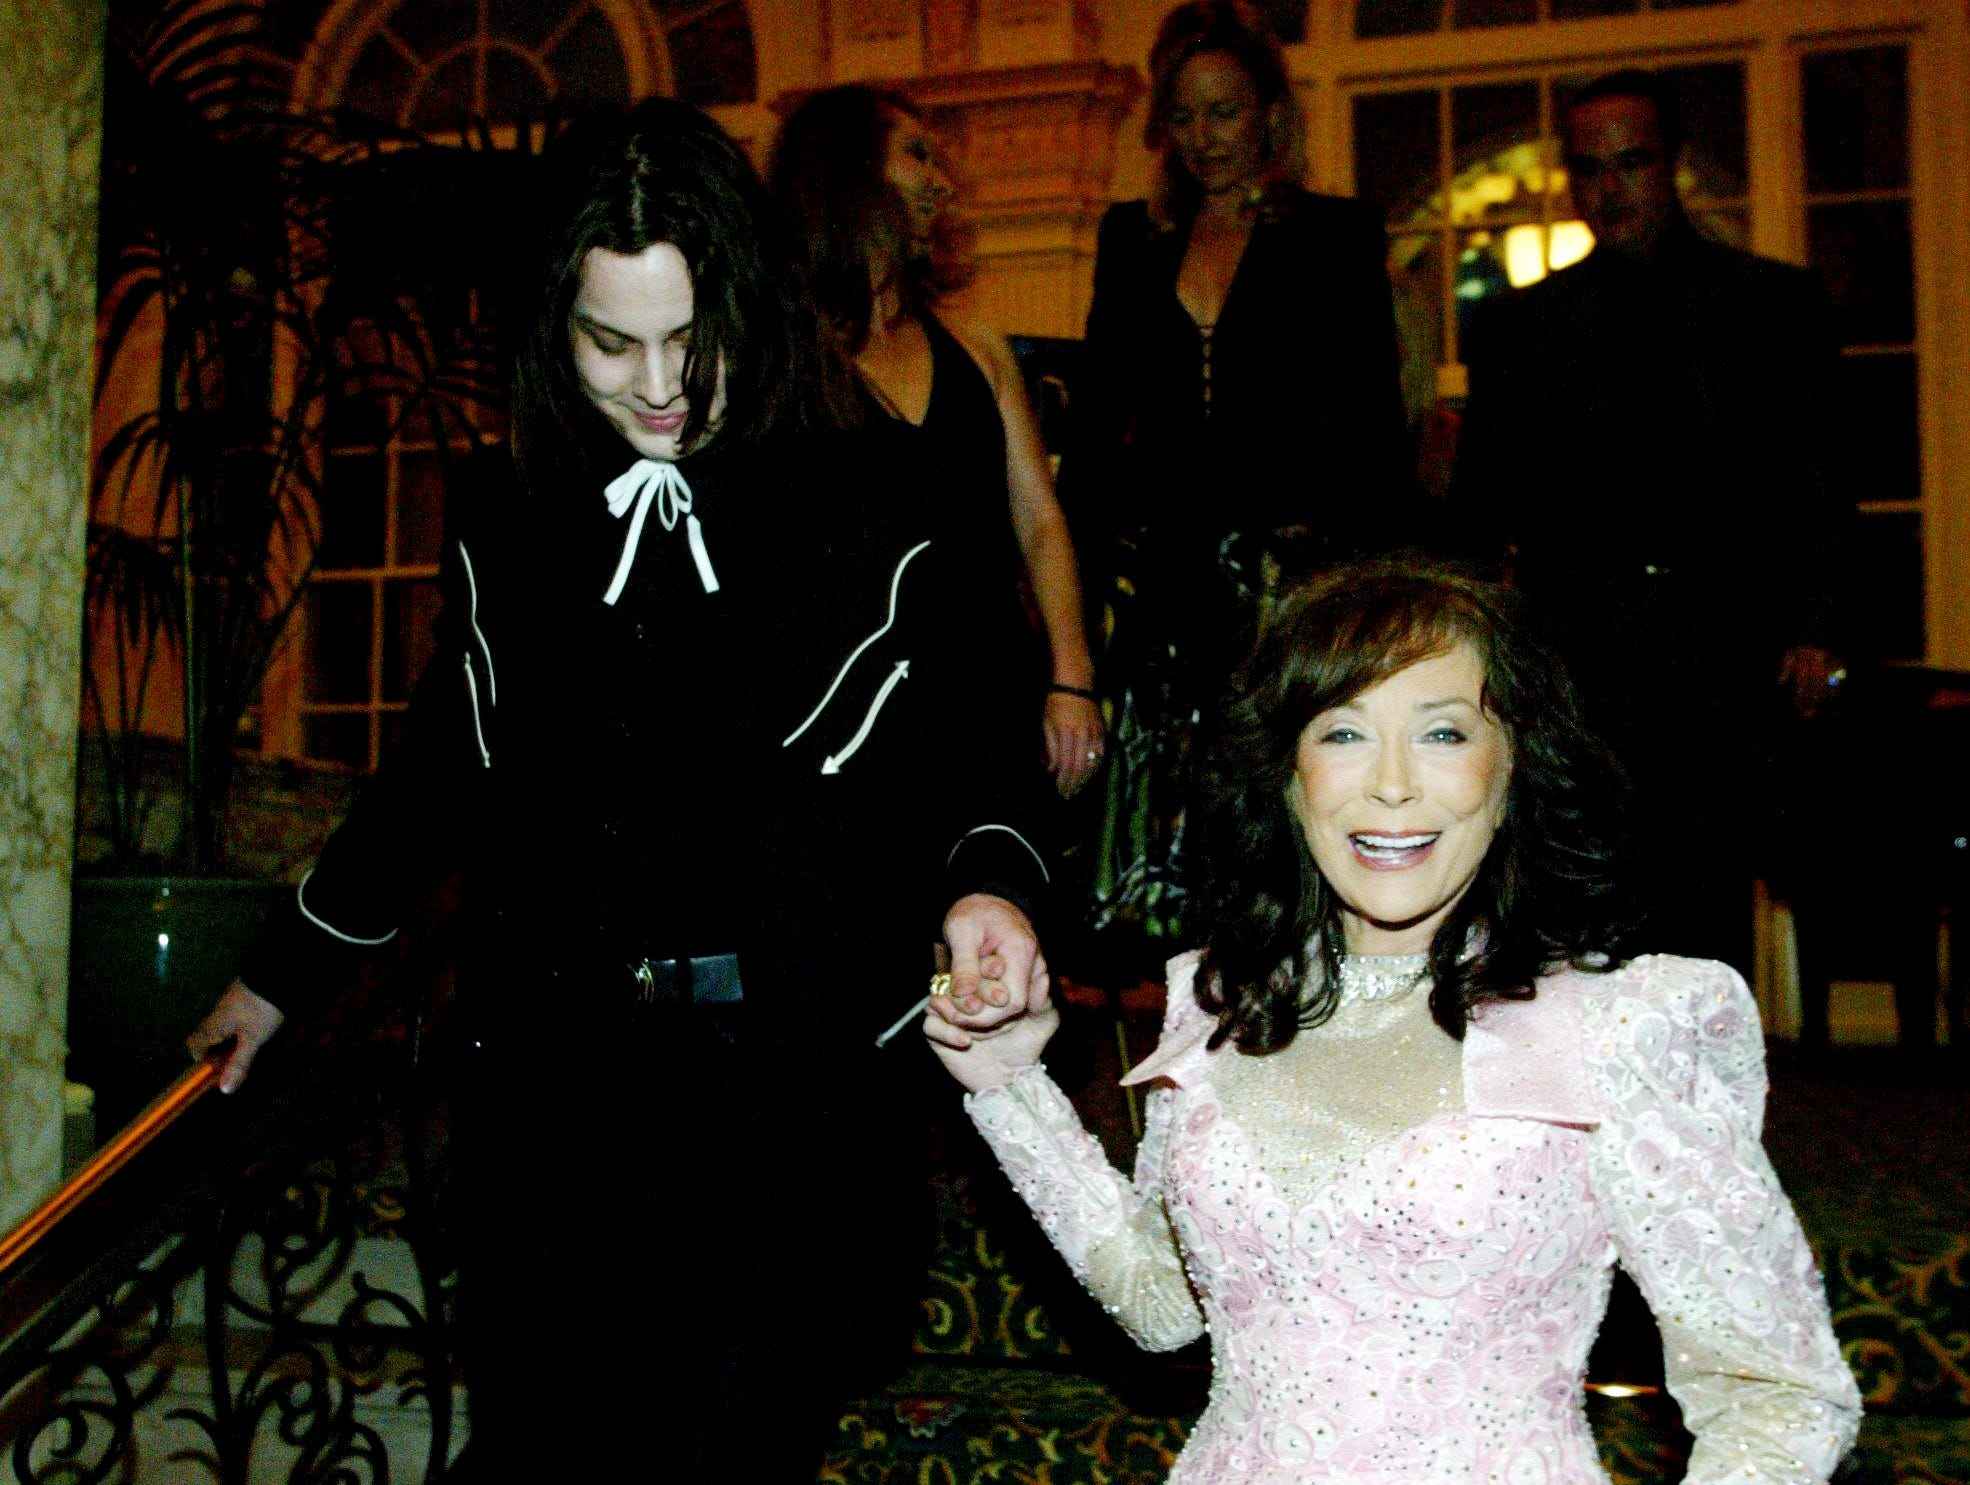 """Loretta Lynn, right, gets help down the stairs by White Stripes member Jack White during her new album release party at the Hermitage Hotel April 22, 2004. White was producer of Lynn's """"Van Lear Rose"""" album."""